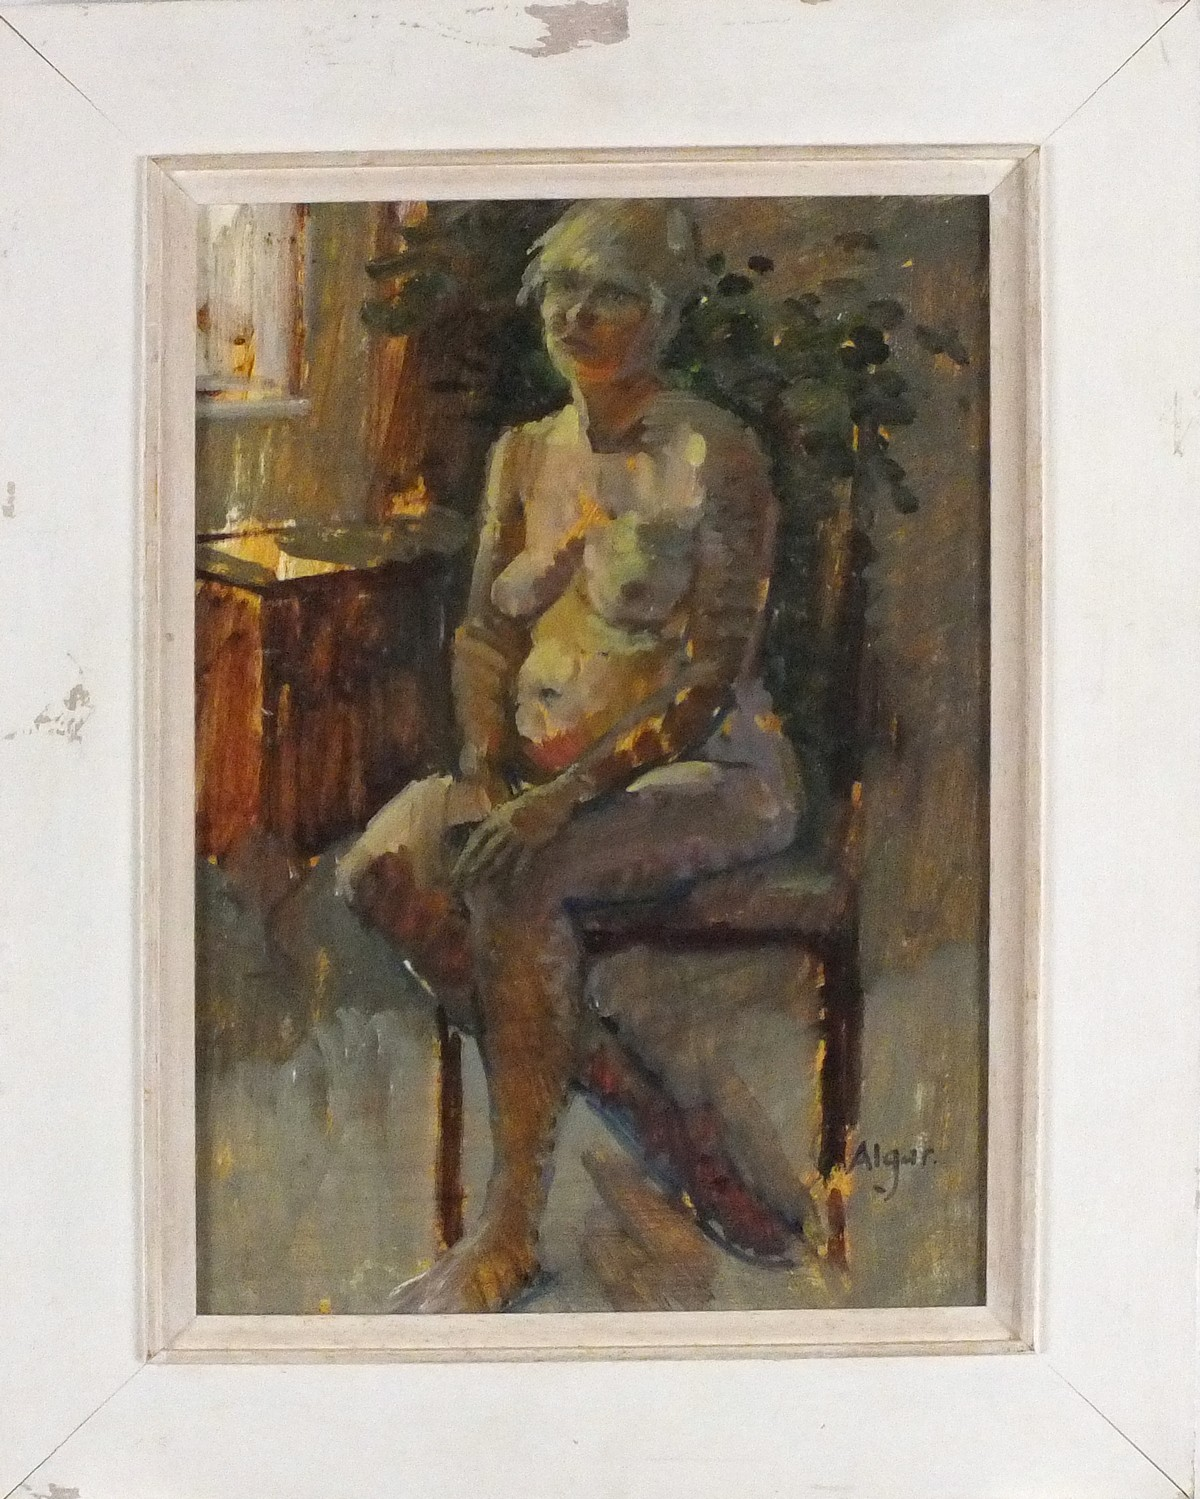 Lot 9 - Pat ALGAR (British 1939 - 2013) 'Seated Nude'- Portrait of a Woman, Oil on board, Signed,